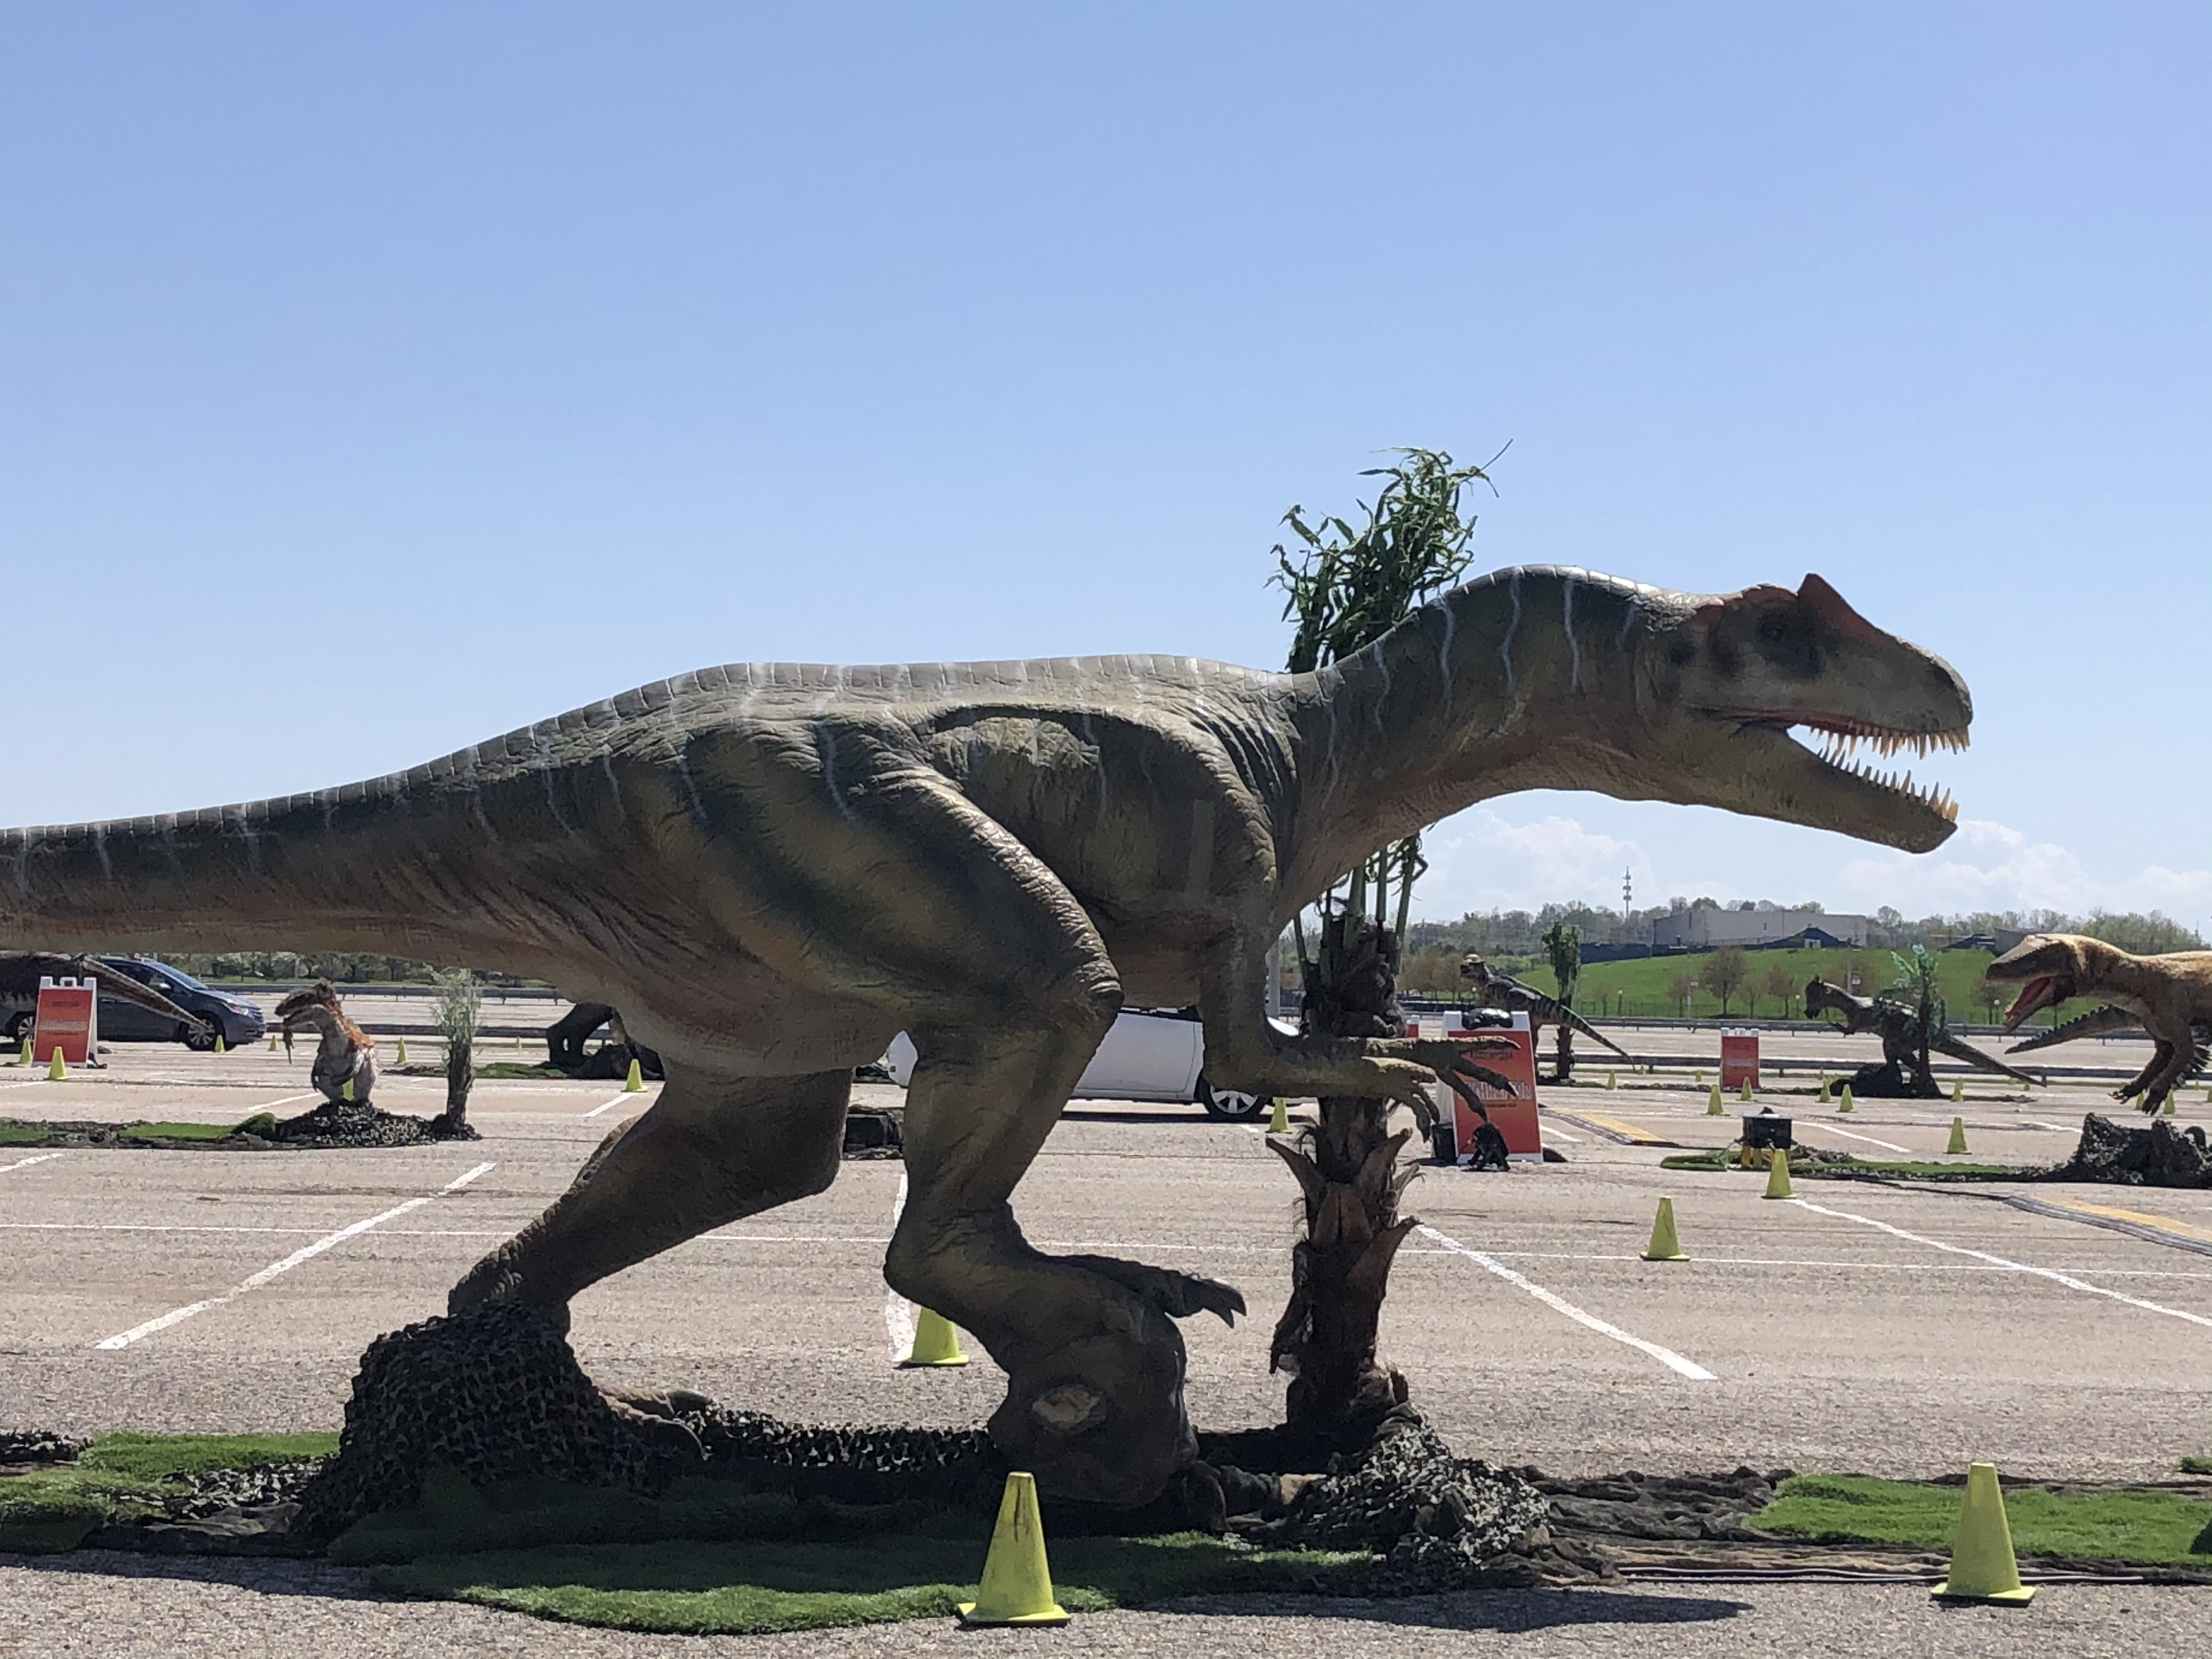 dinosaur statue in parking lot of hollywood casino amphitheater